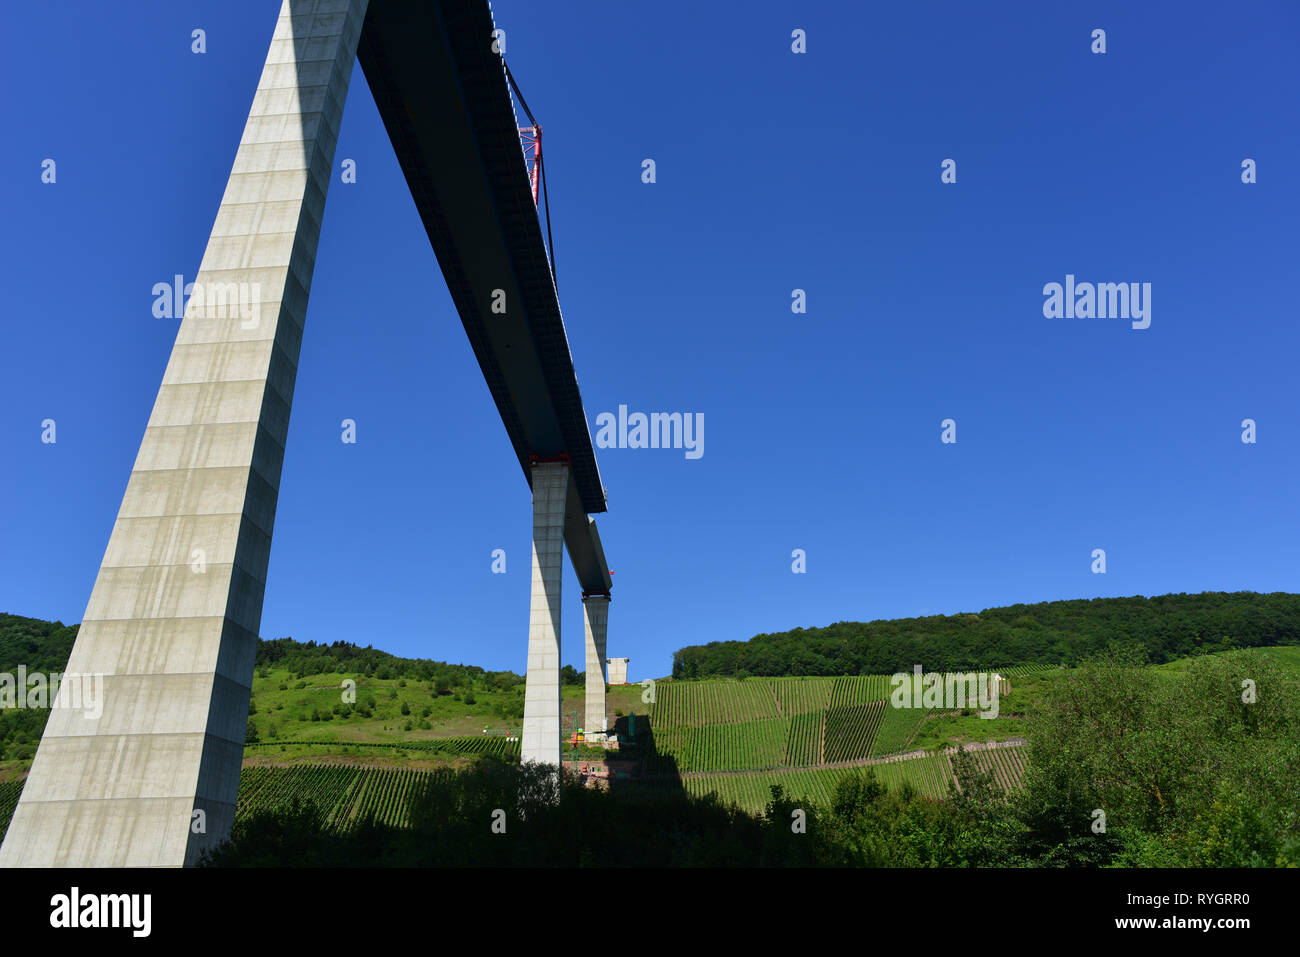 Construction of the bridge over the Mosel river, with grapeyards at background - Stock Image